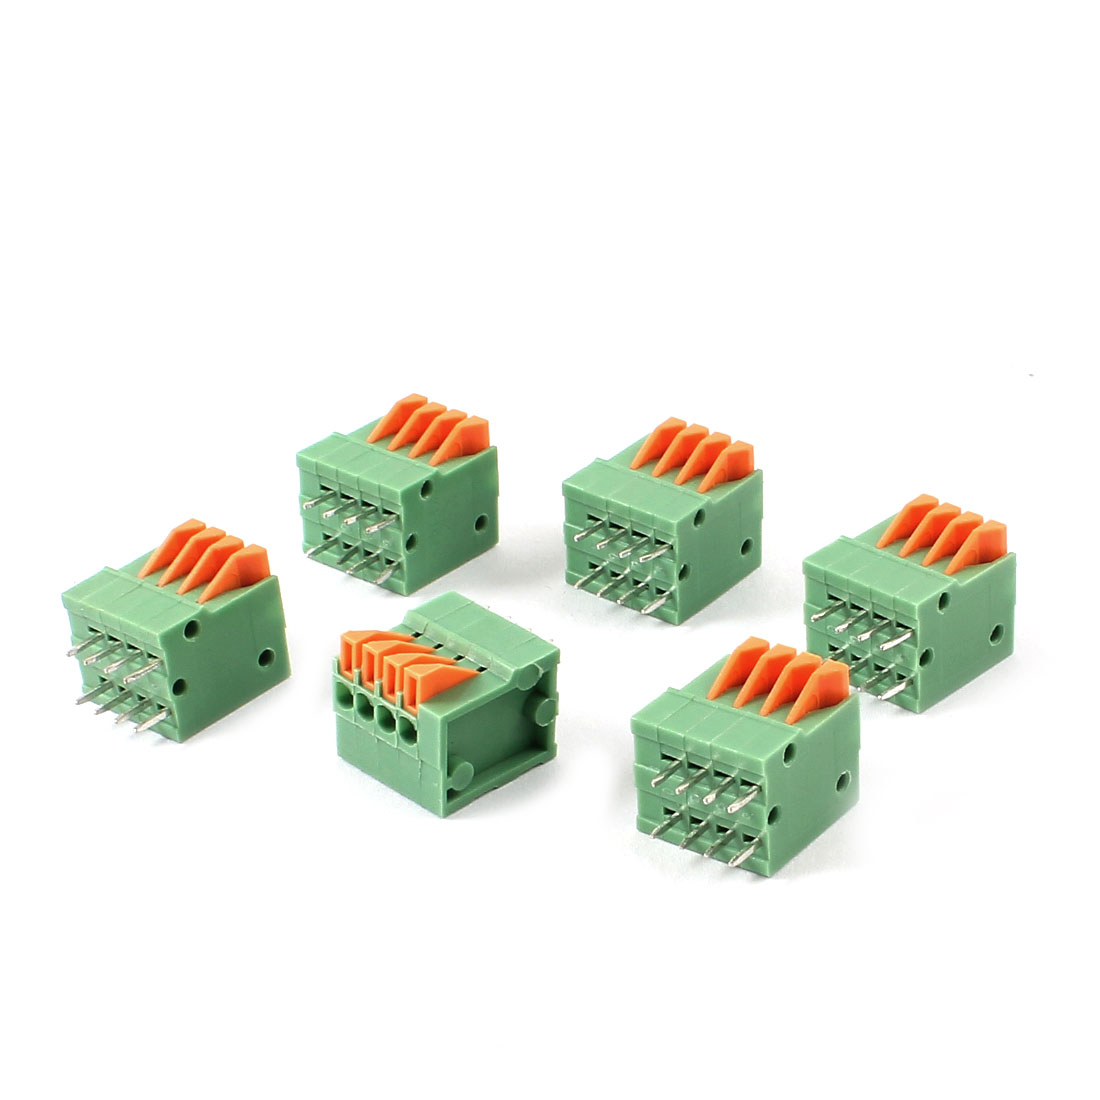 6 Pieces 4-Way 2.54mm Pitch 150V 2A PCB Mount Type Spring Terminal Block